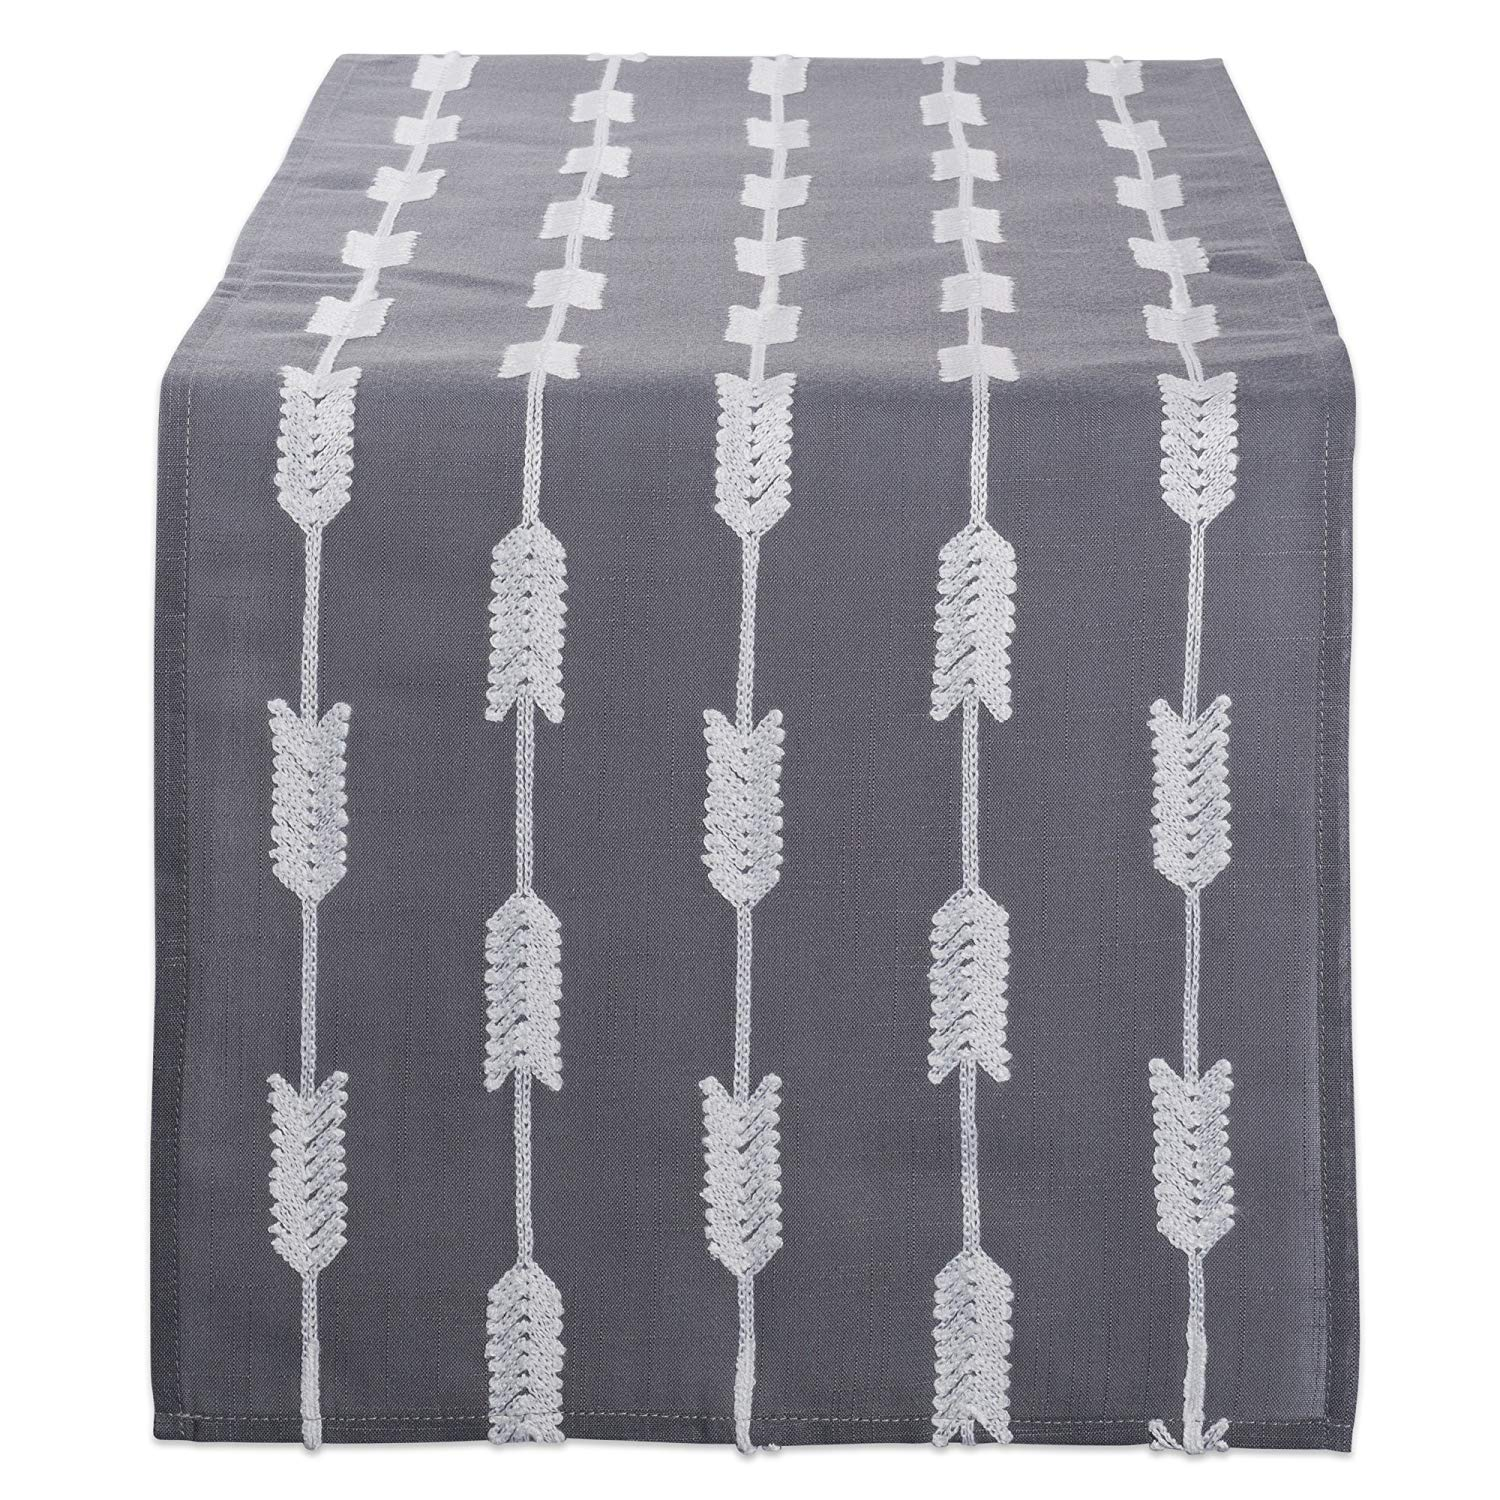 dii polyester embroidered table runner for spring garden artistic accents tablecloth party summer bbq baby showers and everyday use arrows gray base home pier one imports dining